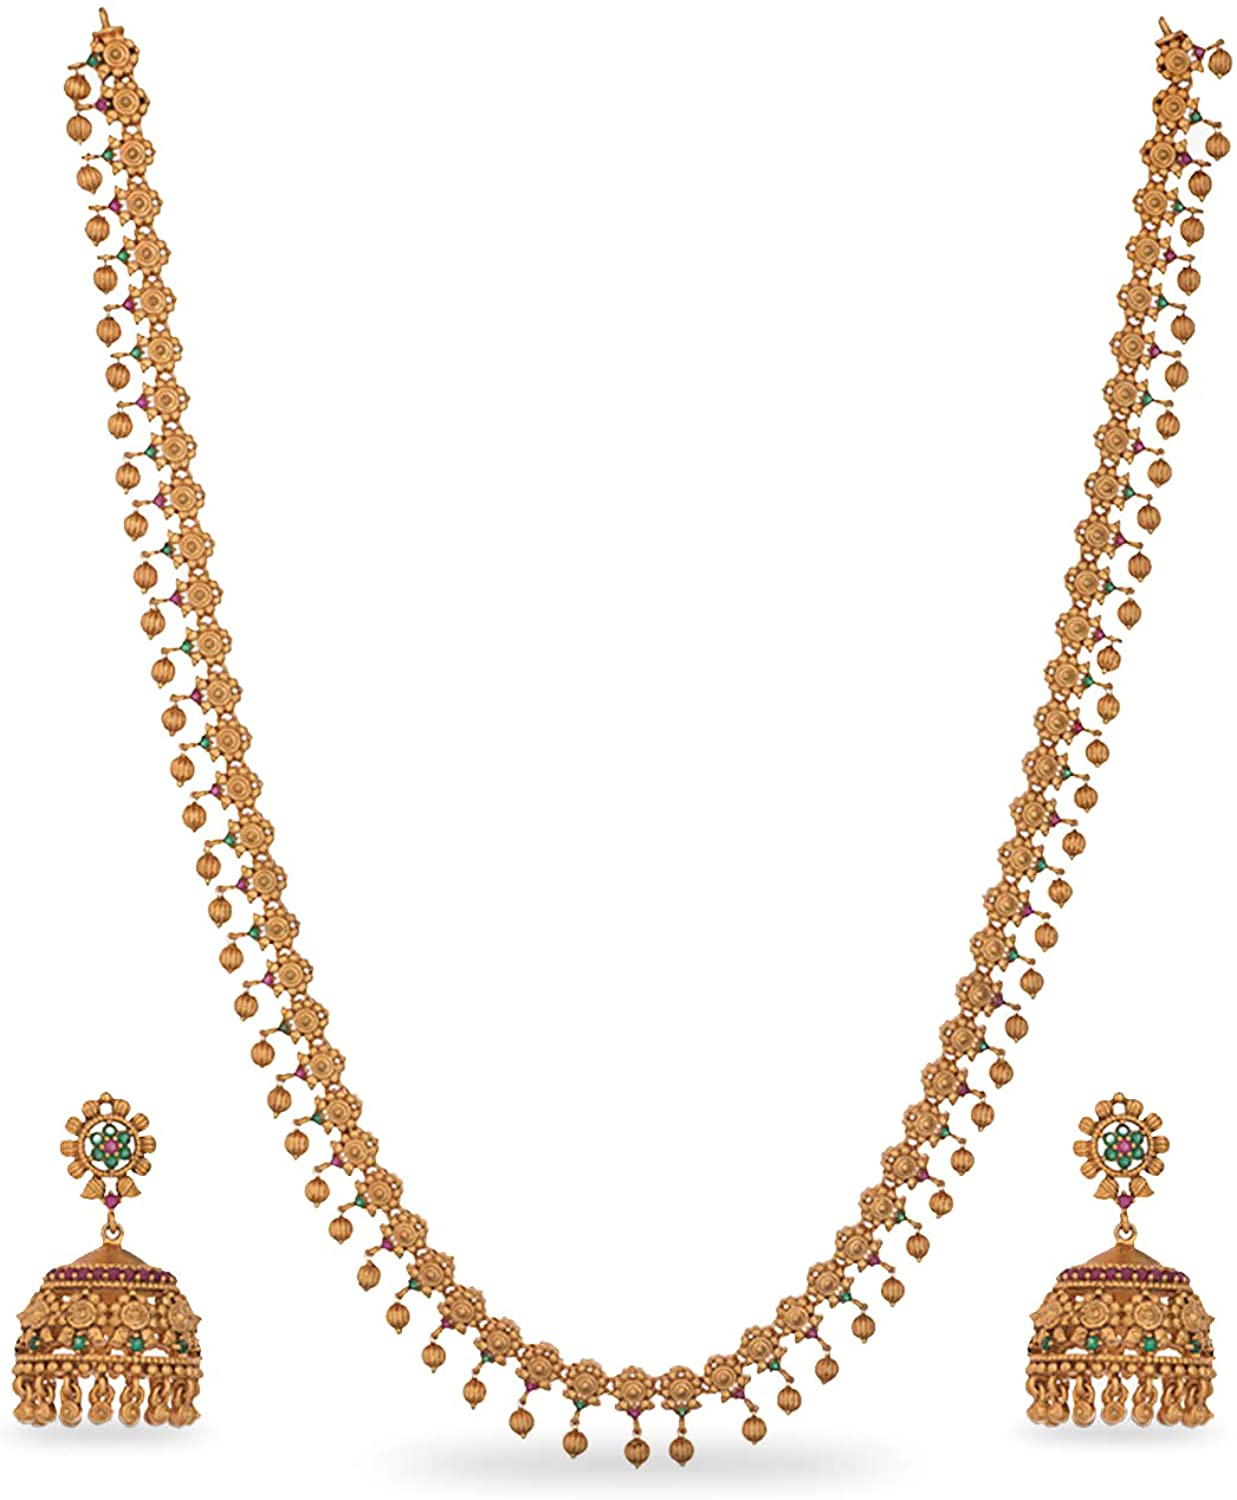 Tarinika Gold-Plated Indian Jewelry Set with Long Necklace and Earrings - Red Green